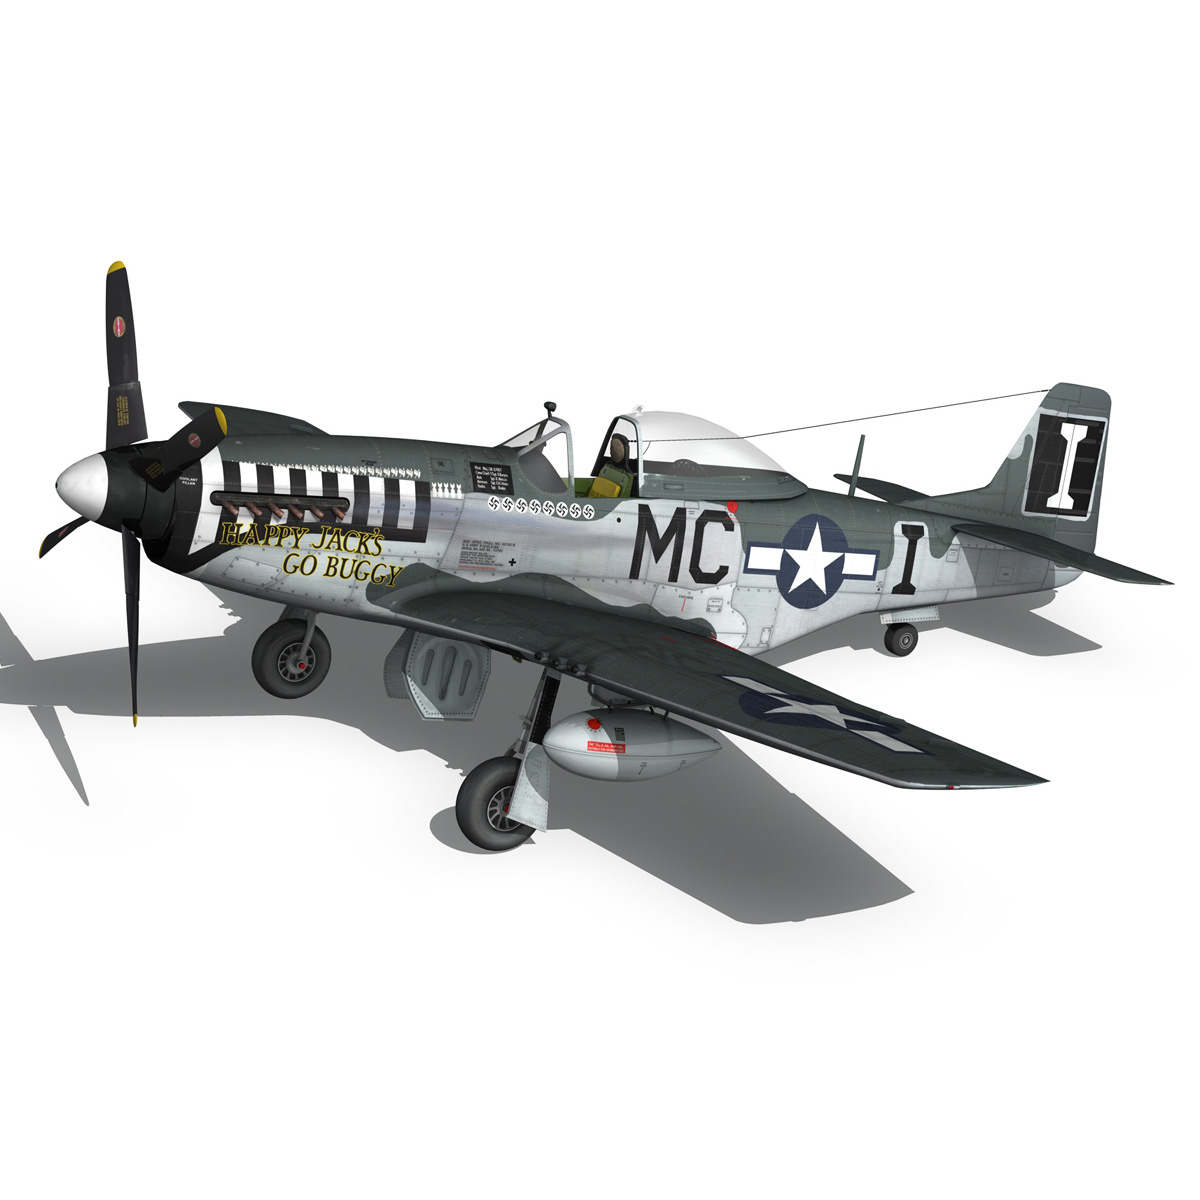 north american p-51 mustang – happy jacks go buggy 3d model fbx c4d lwo obj 280372